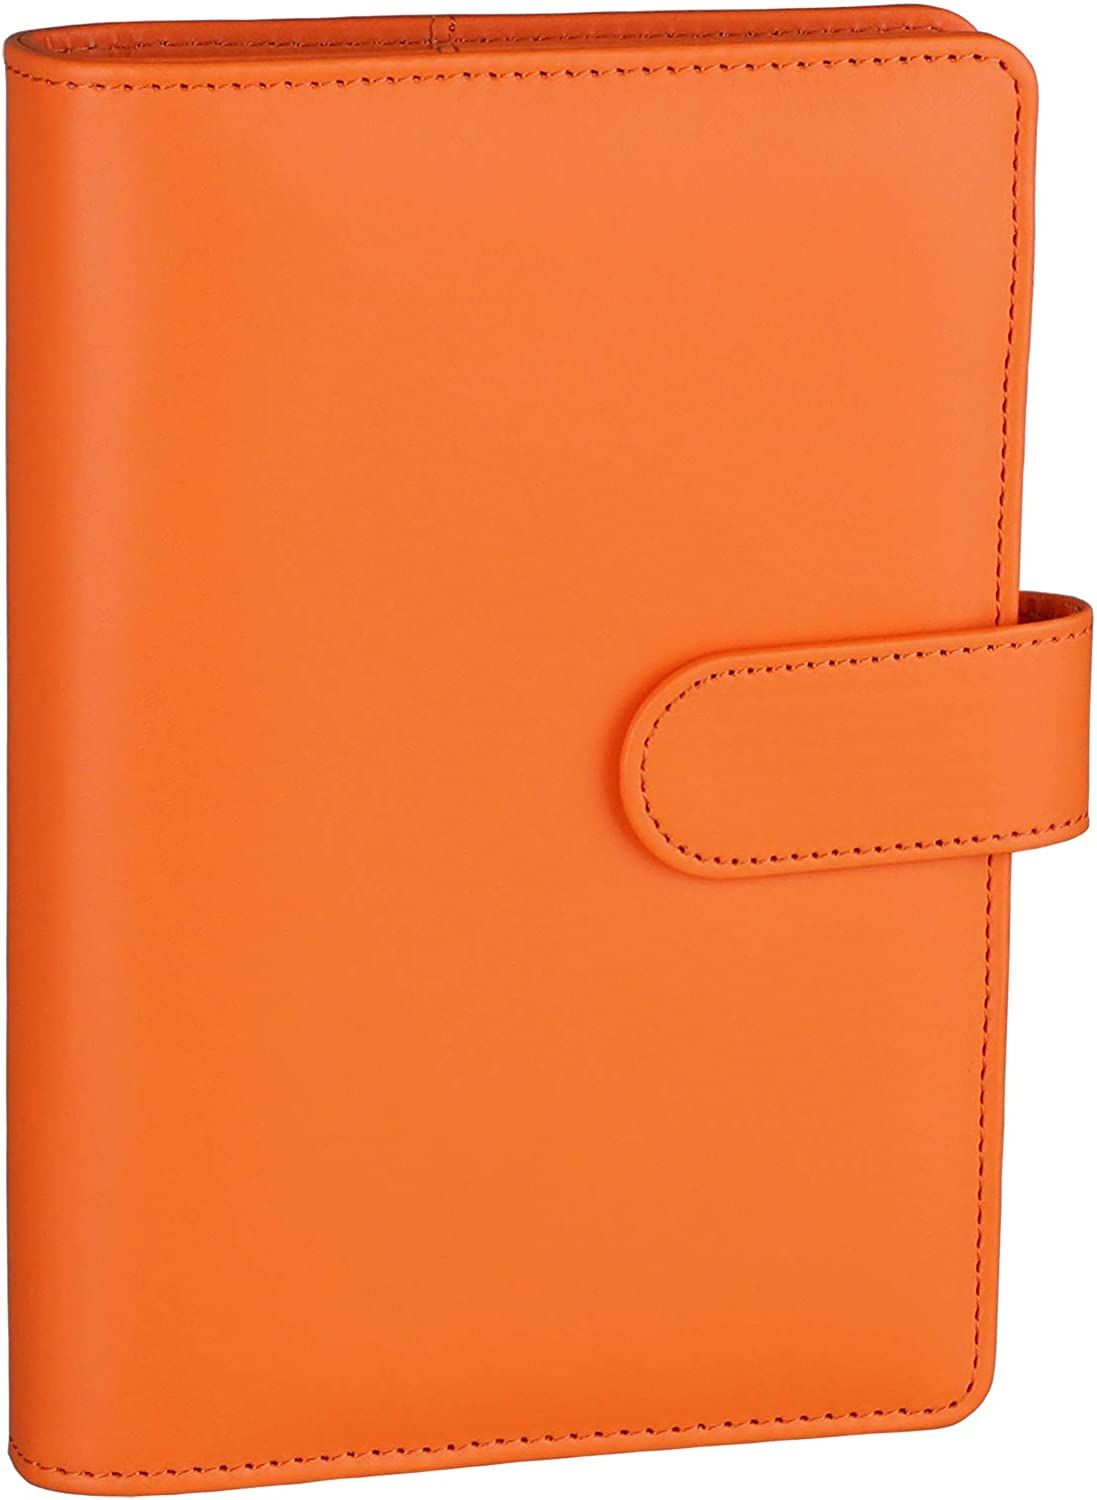 New item Antner Max 88% OFF A6 PU Leather Notebook 6 Ring Refillable Binder fo